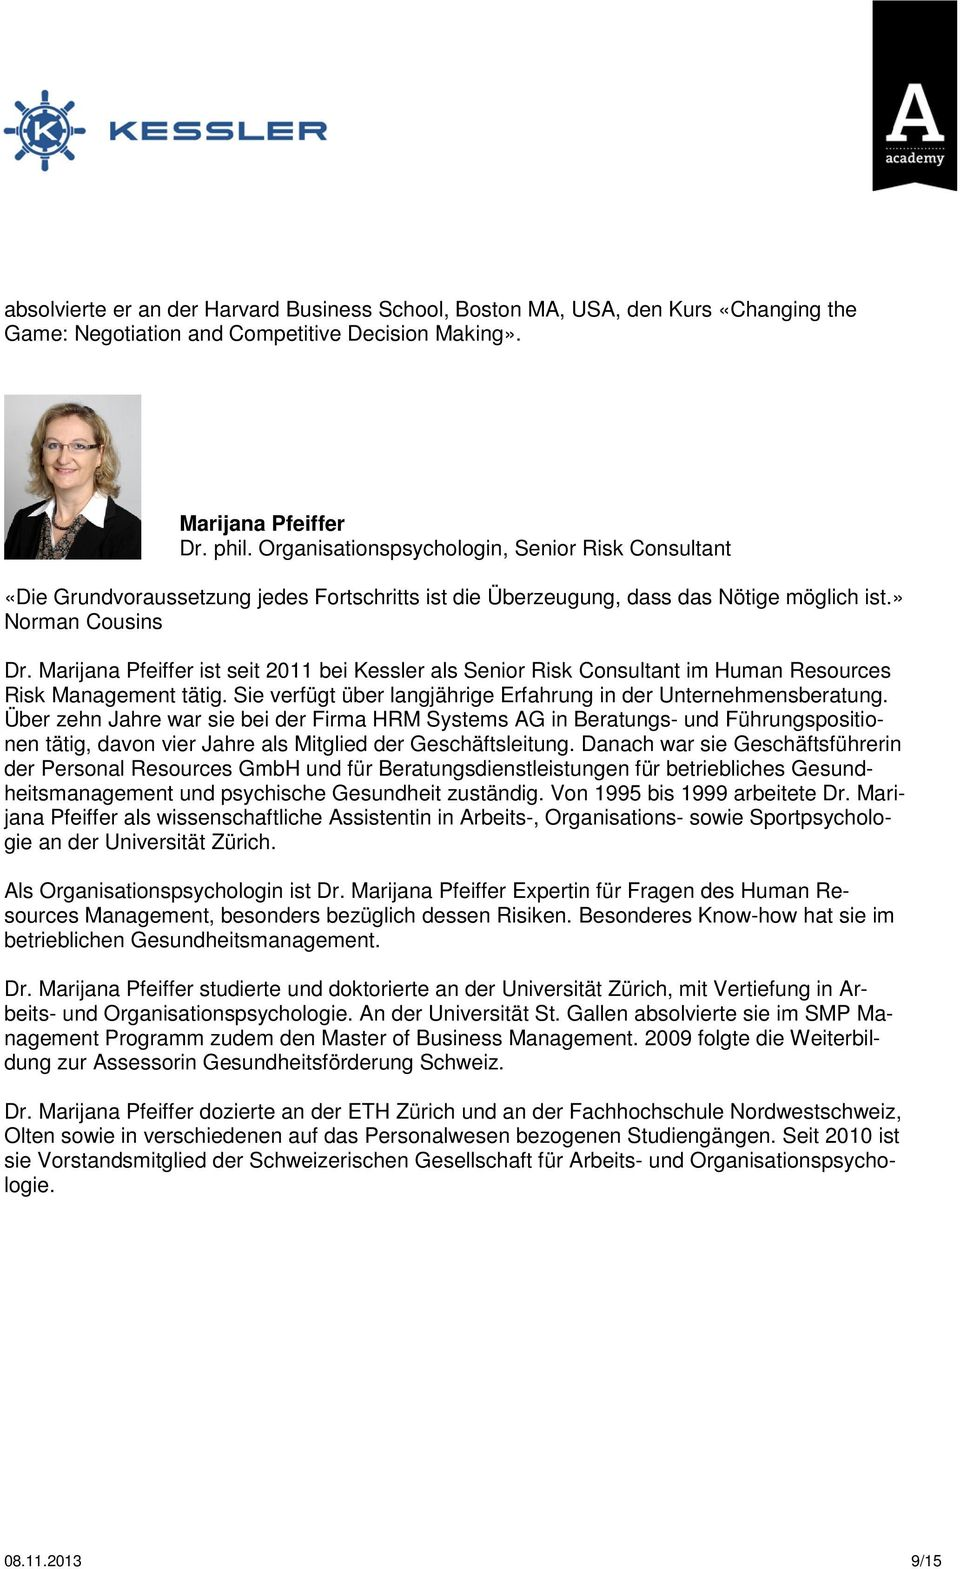 Marijana Pfeiffer ist seit 2011 bei Kessler als Senior Risk Consultant im Human Resources Risk Management tätig. Sie verfügt über langjährige Erfahrung in der Unternehmensberatung.